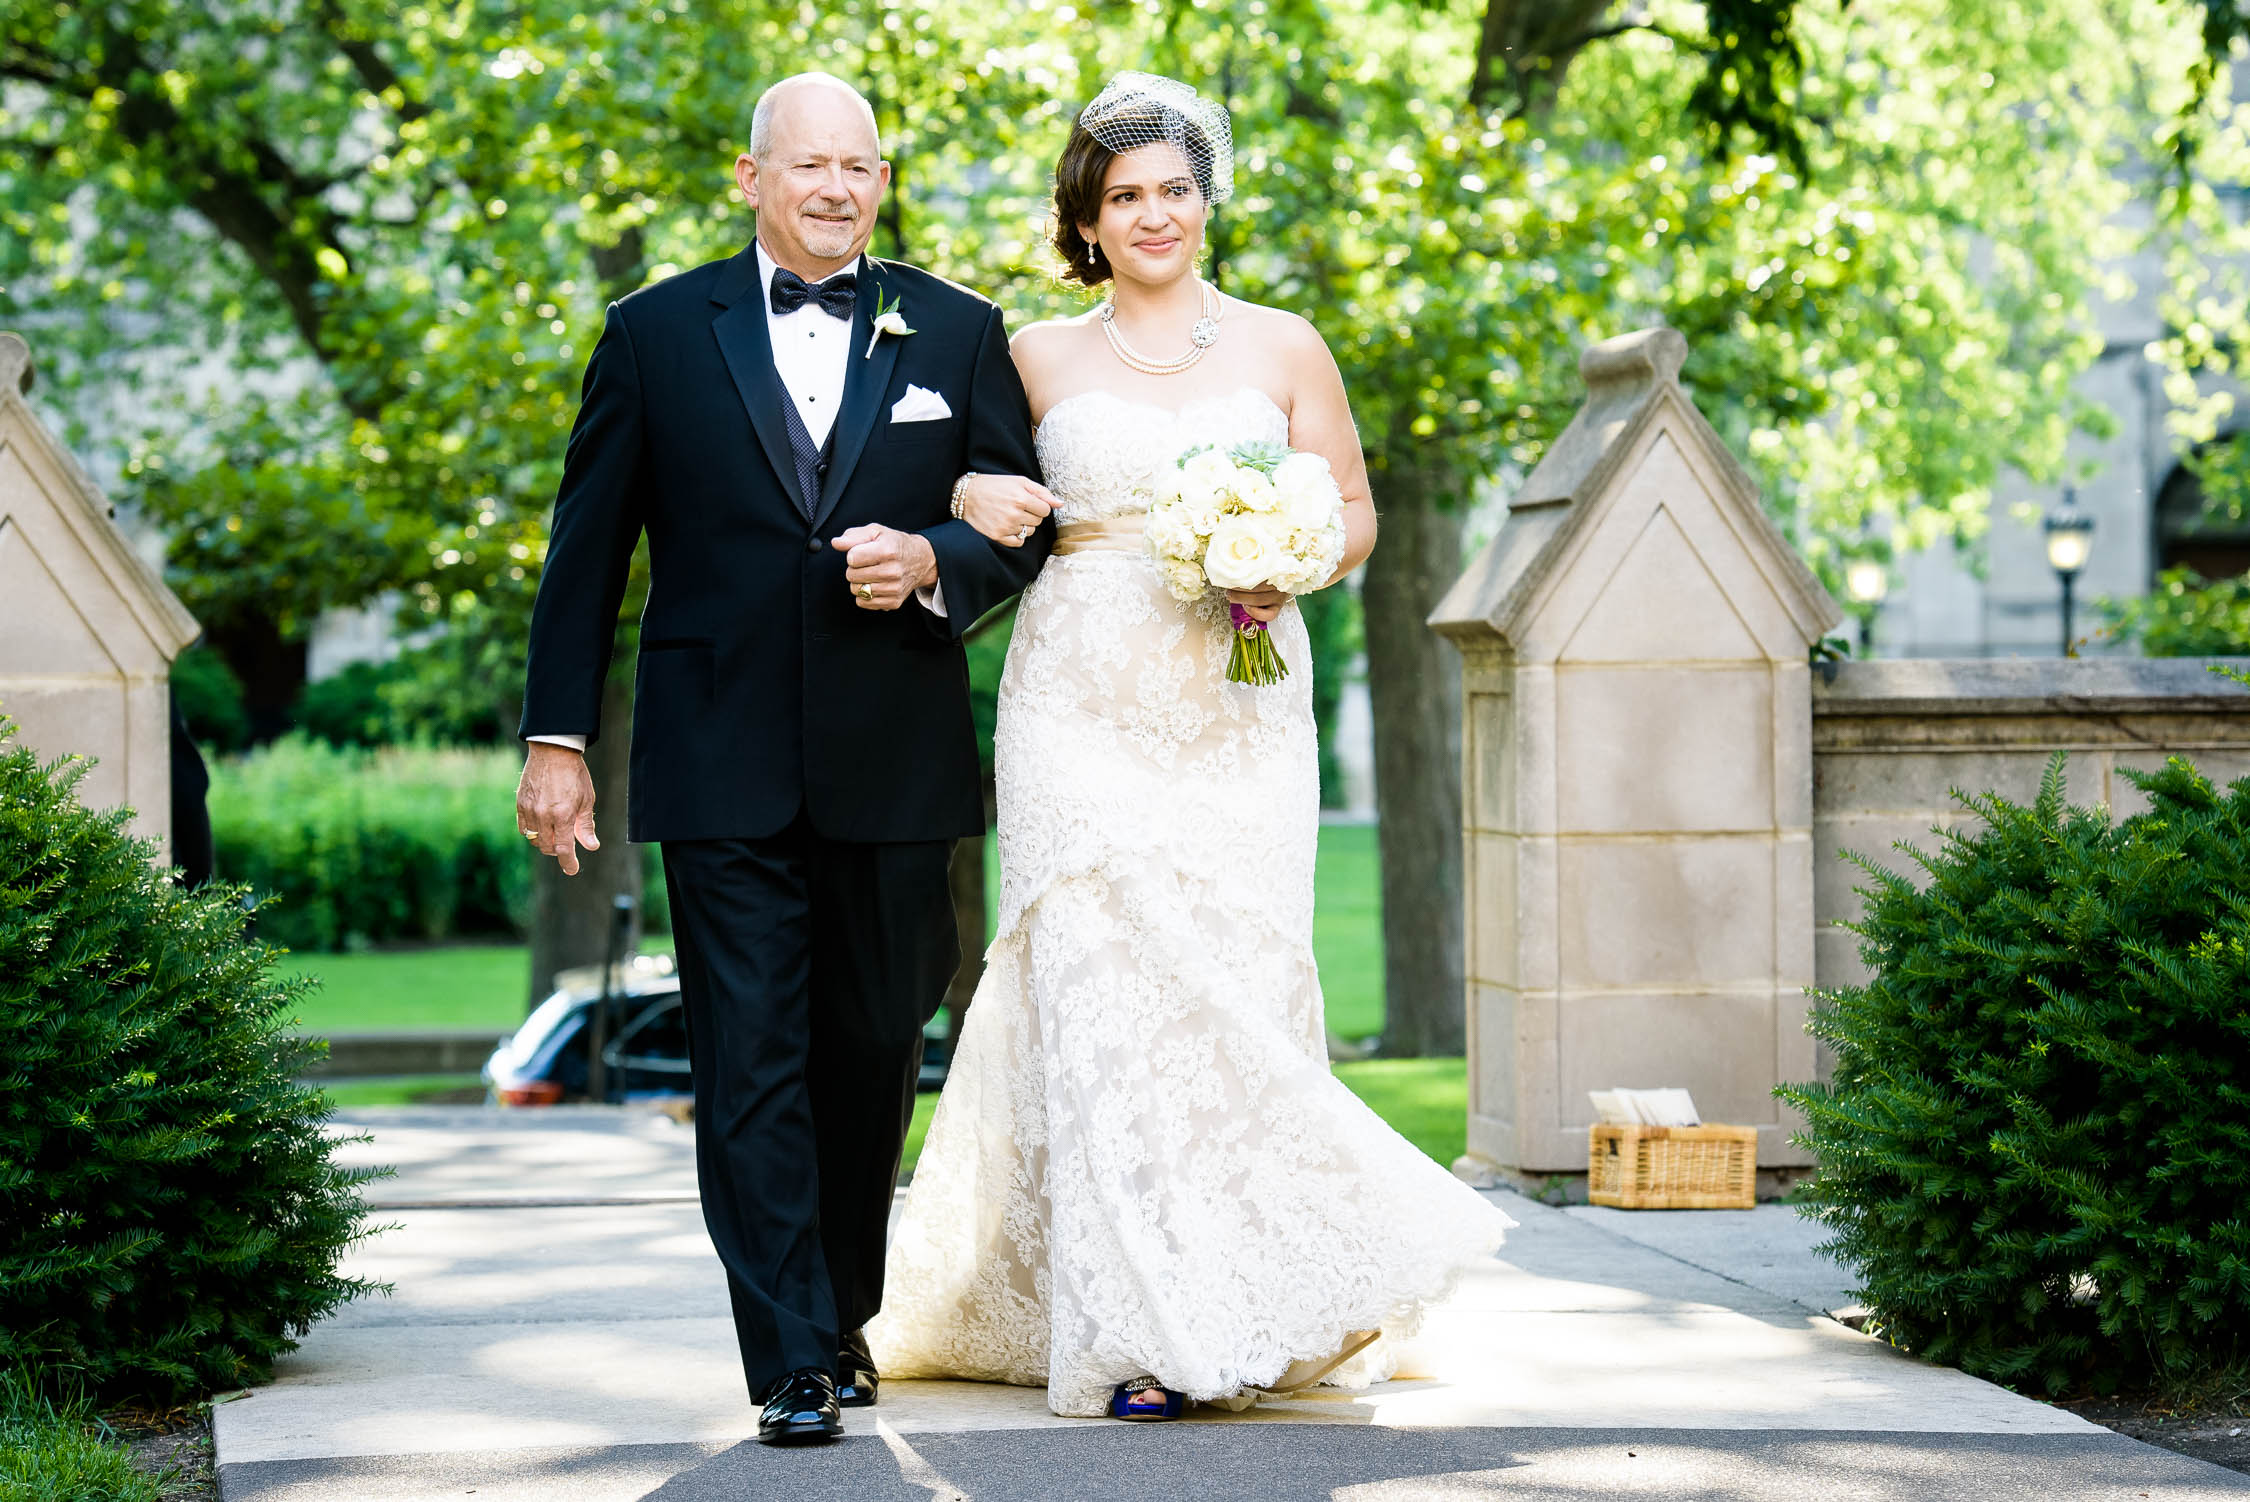 Bride and her father walk down the aisle during a University of Chicago wedding ceremony.